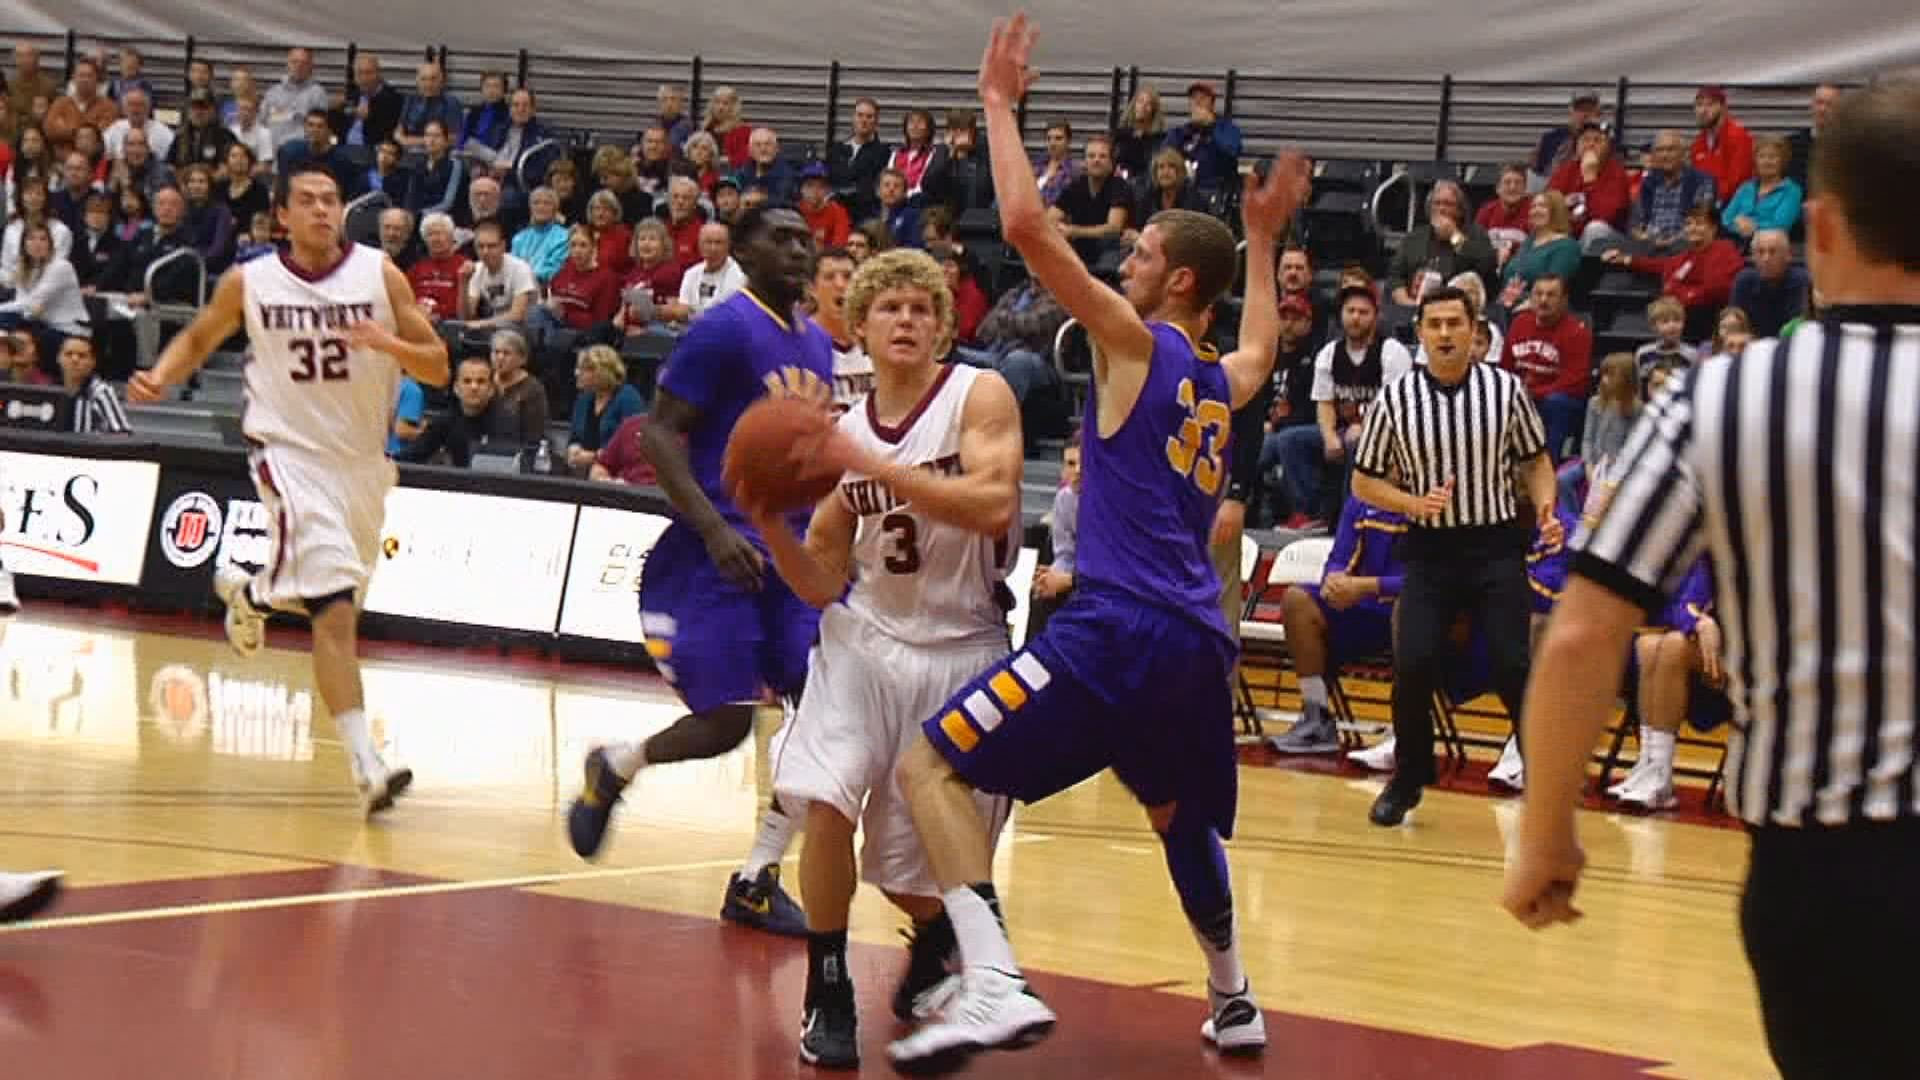 Whitworth will look for its second win of the season over Mary Hardin-Baylor.